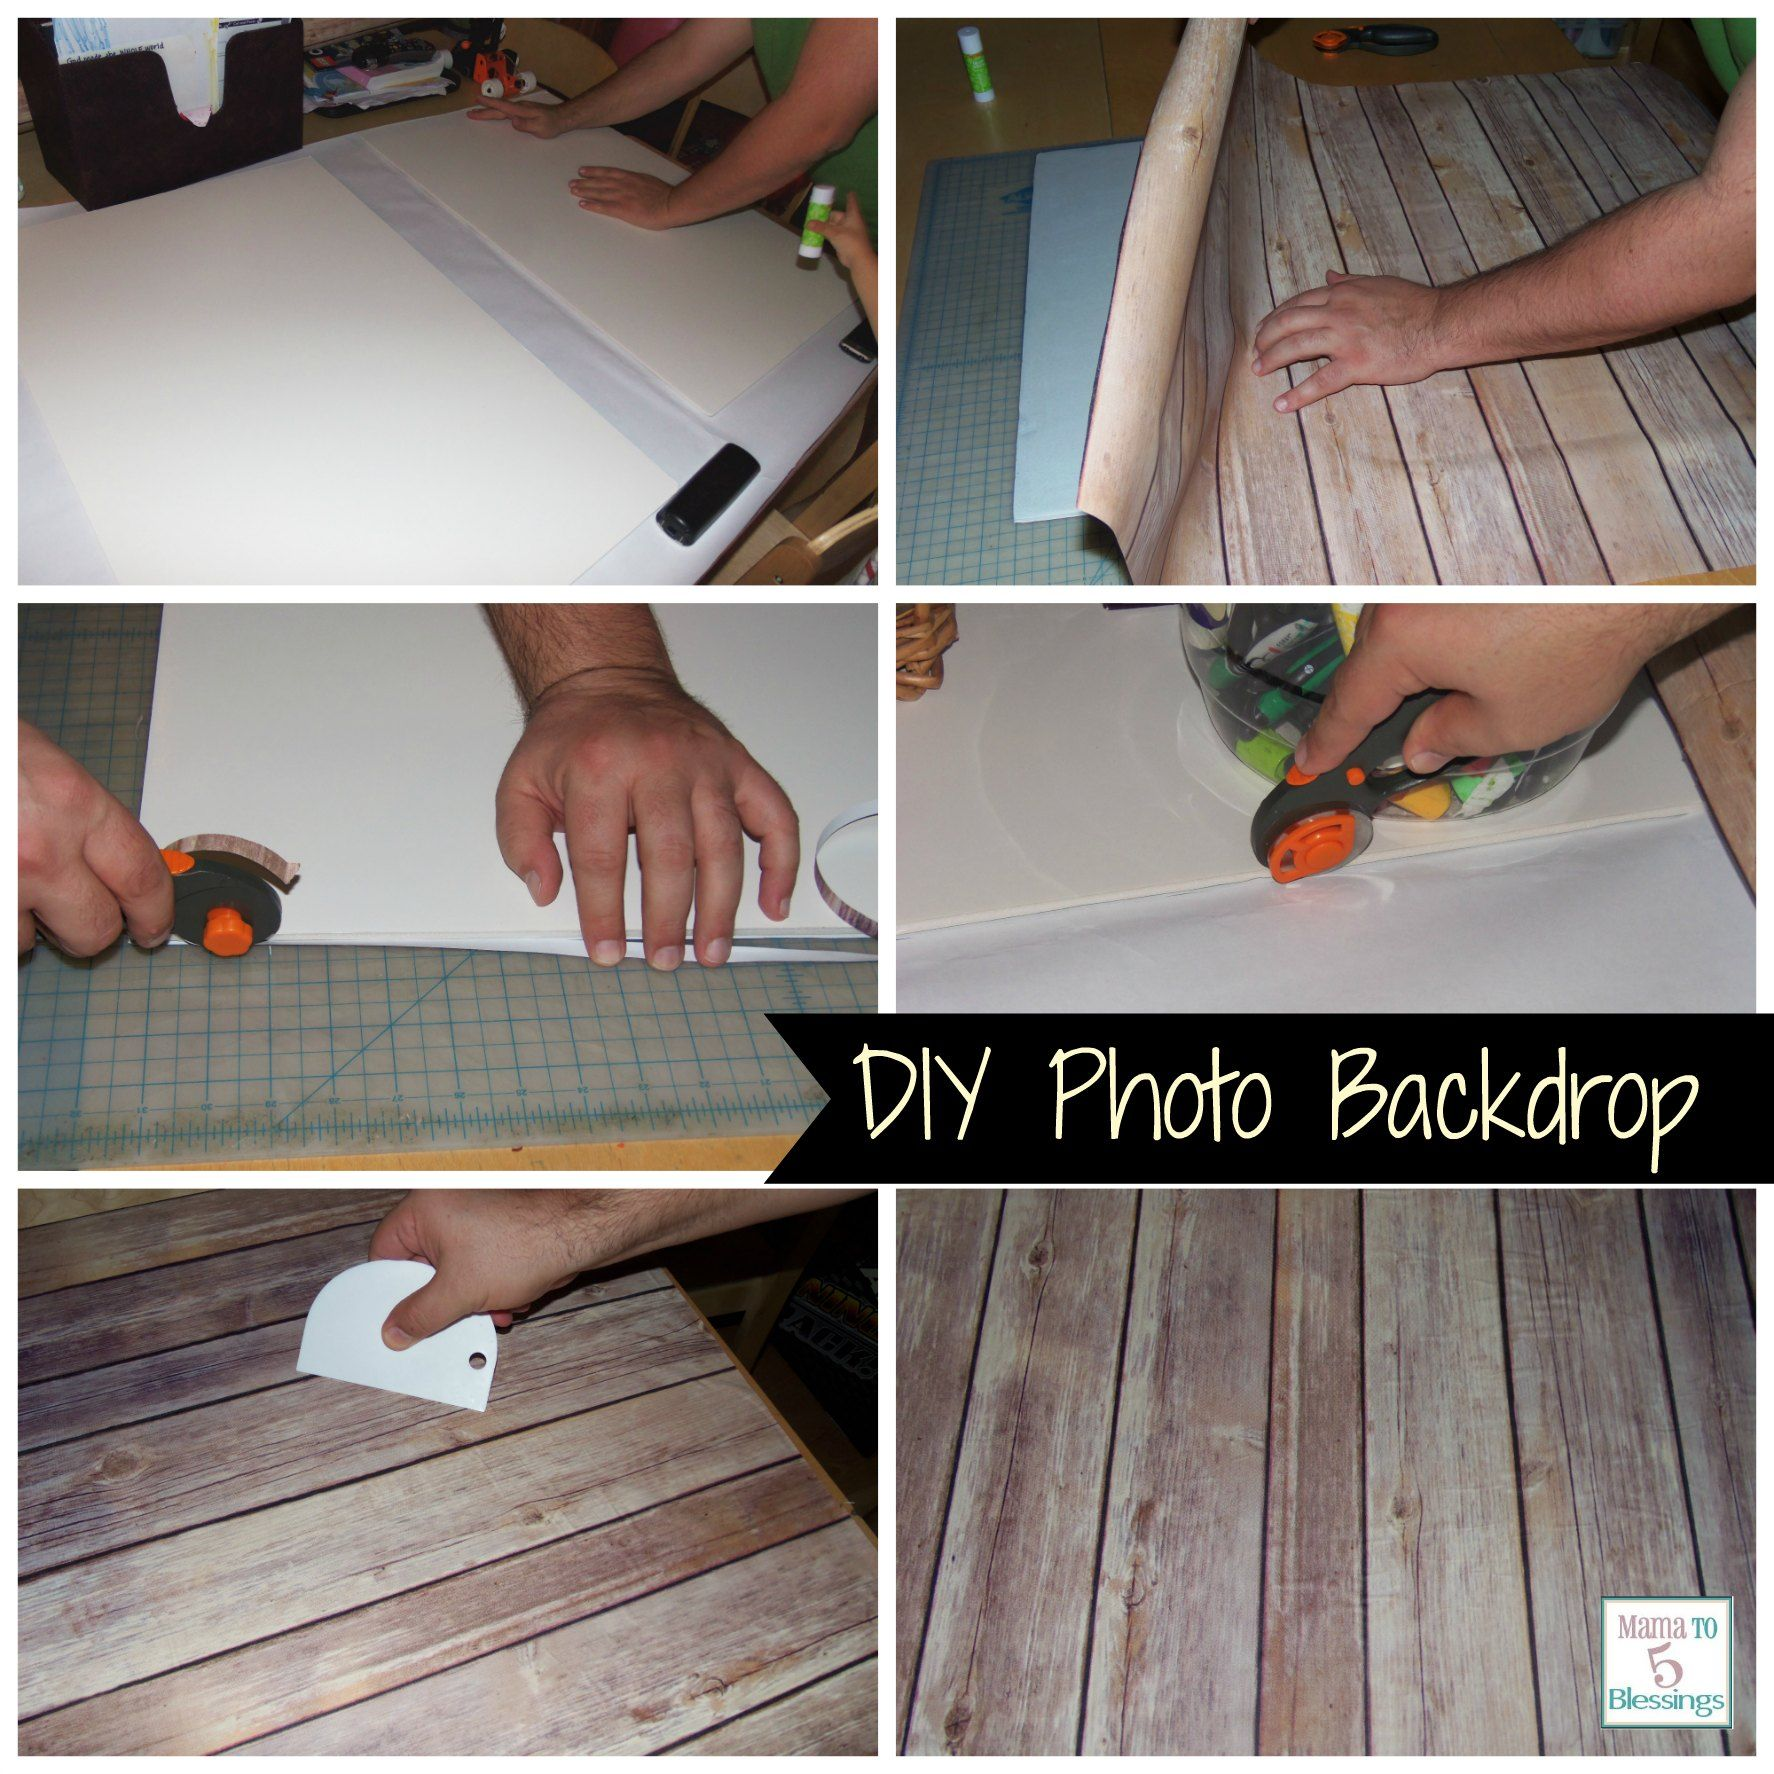 Diy Photography Backdrop Super Easy To Make For A